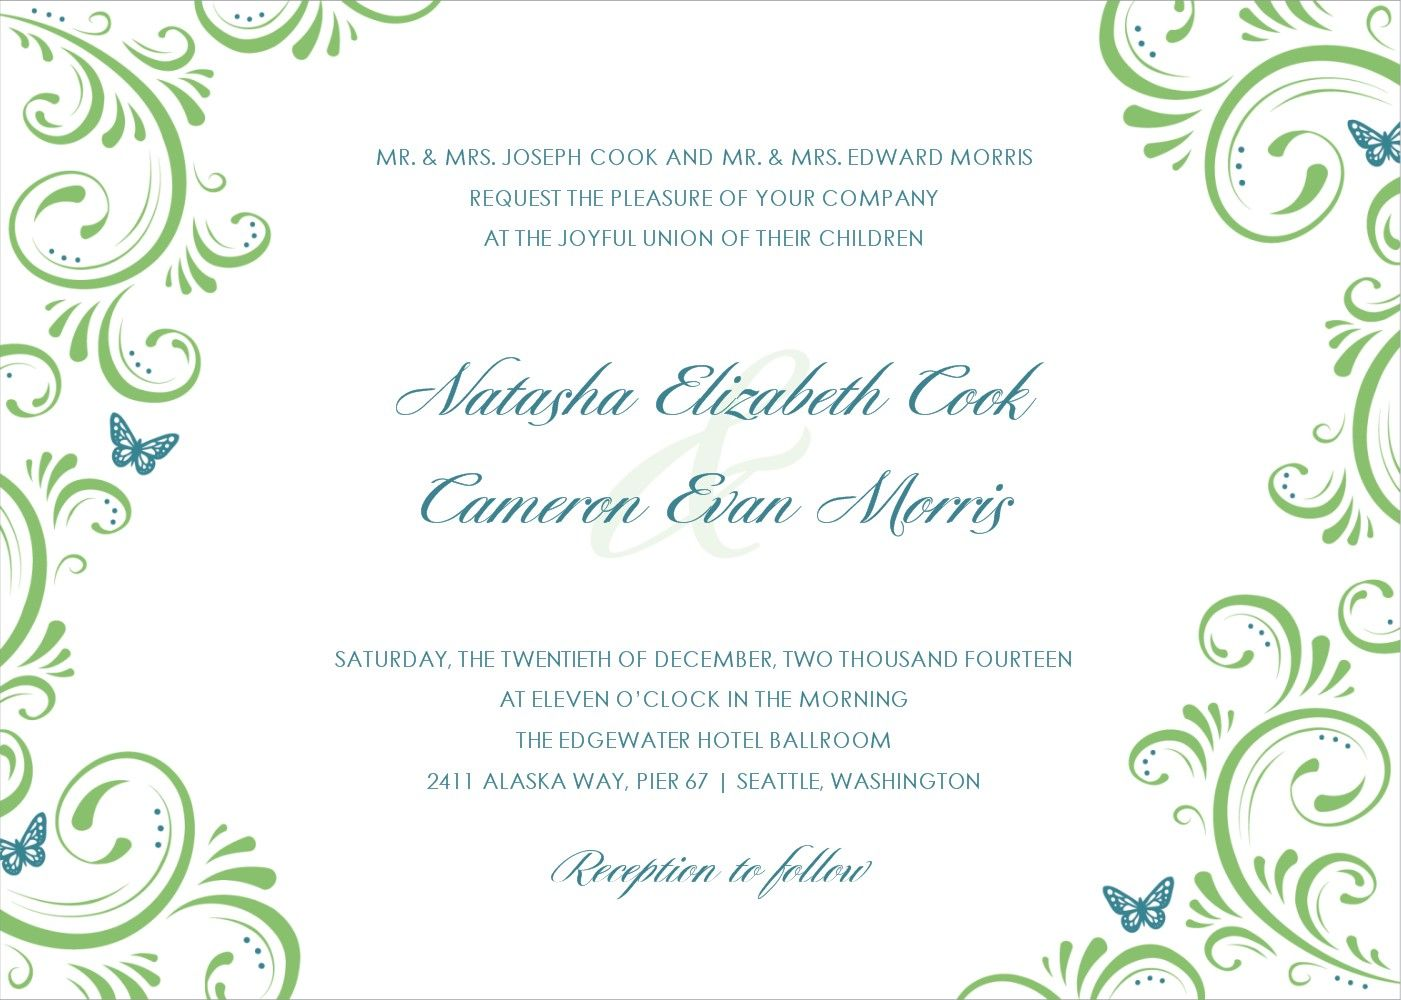 FREE TEMPLATE LOOK AT WORDING Wedding Invitation Template Best Template  Collection HMoQHnyw  Invitations Templates